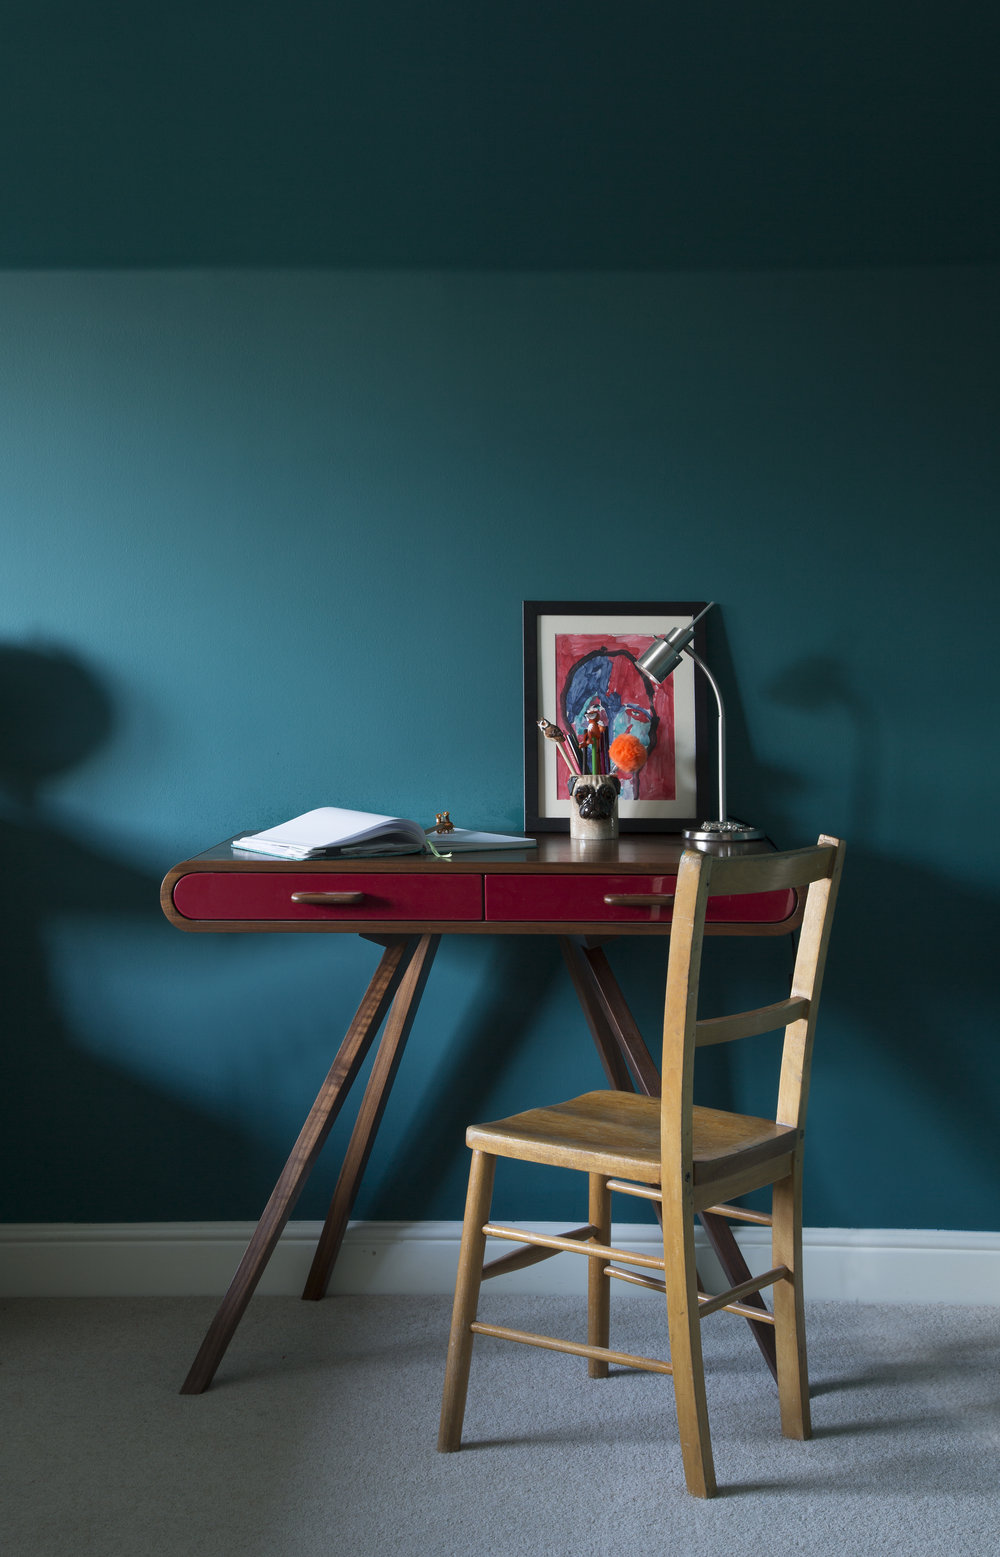 Dark Teal Walls make this teenagers room dramatic